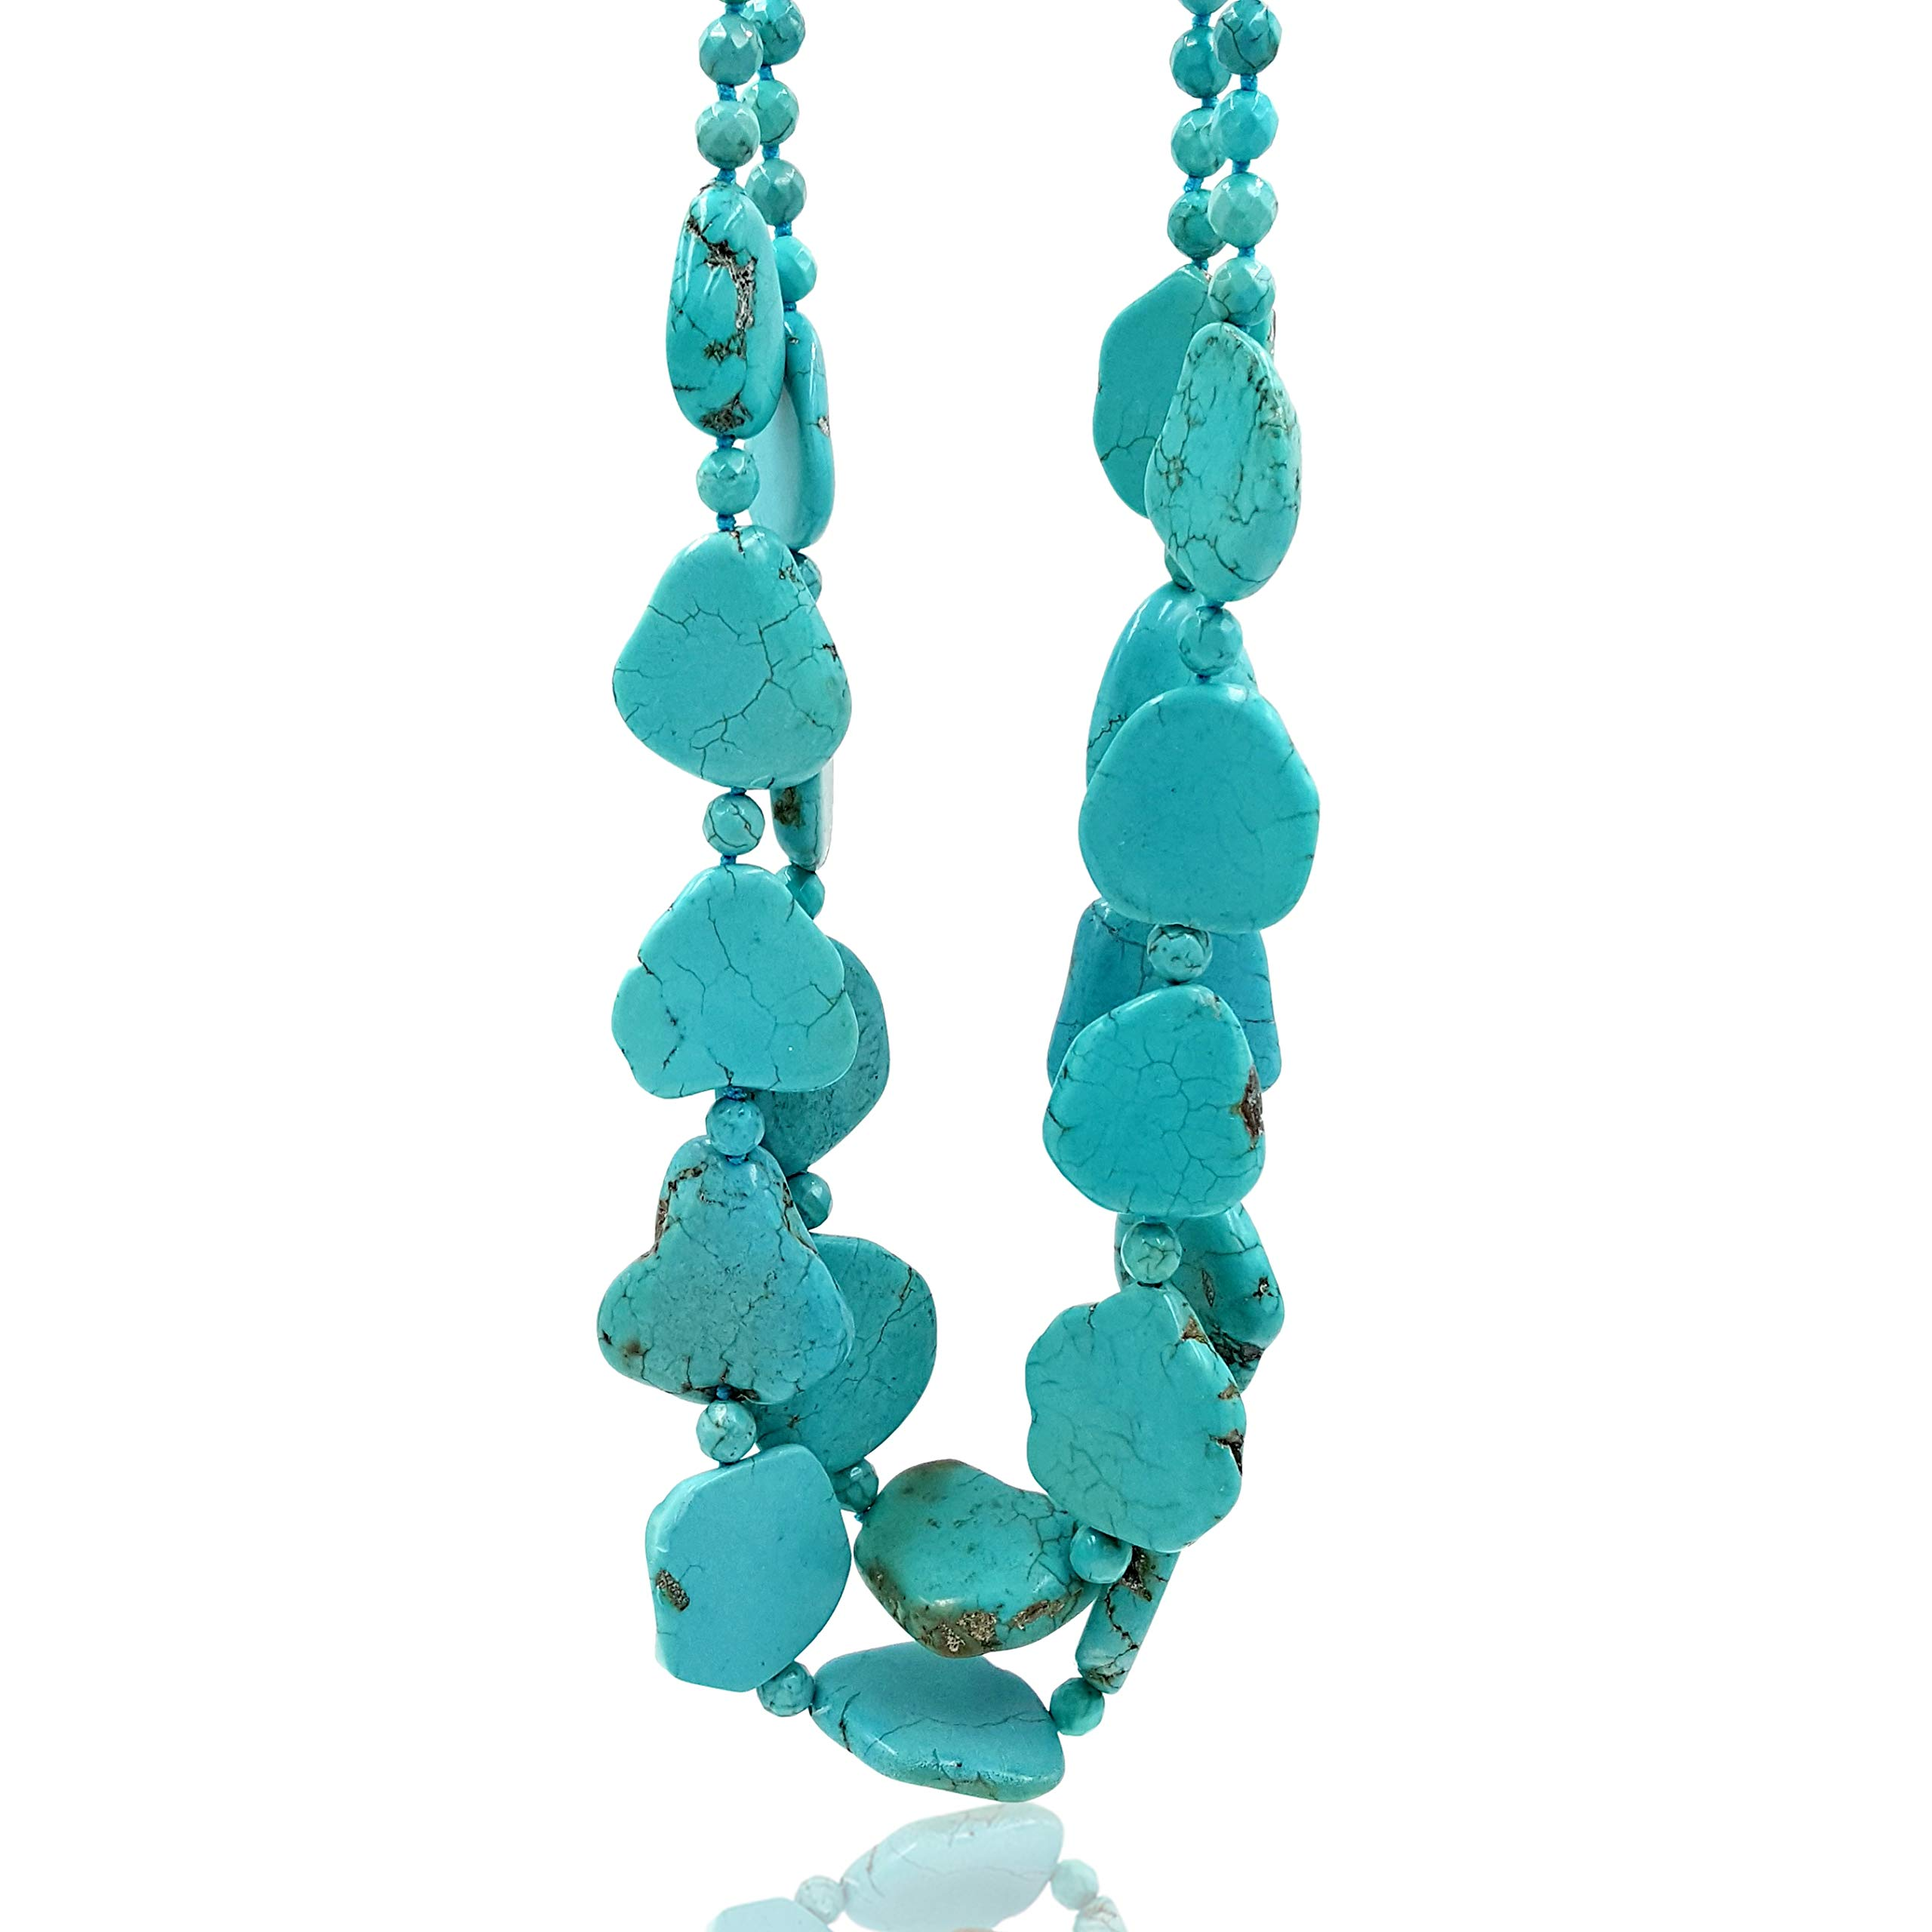 Lii Ji 26.5'' 2 Rows Irregular Shape Blue Simulated Turquoise Howlite Statement Long Necklace by Lii Ji